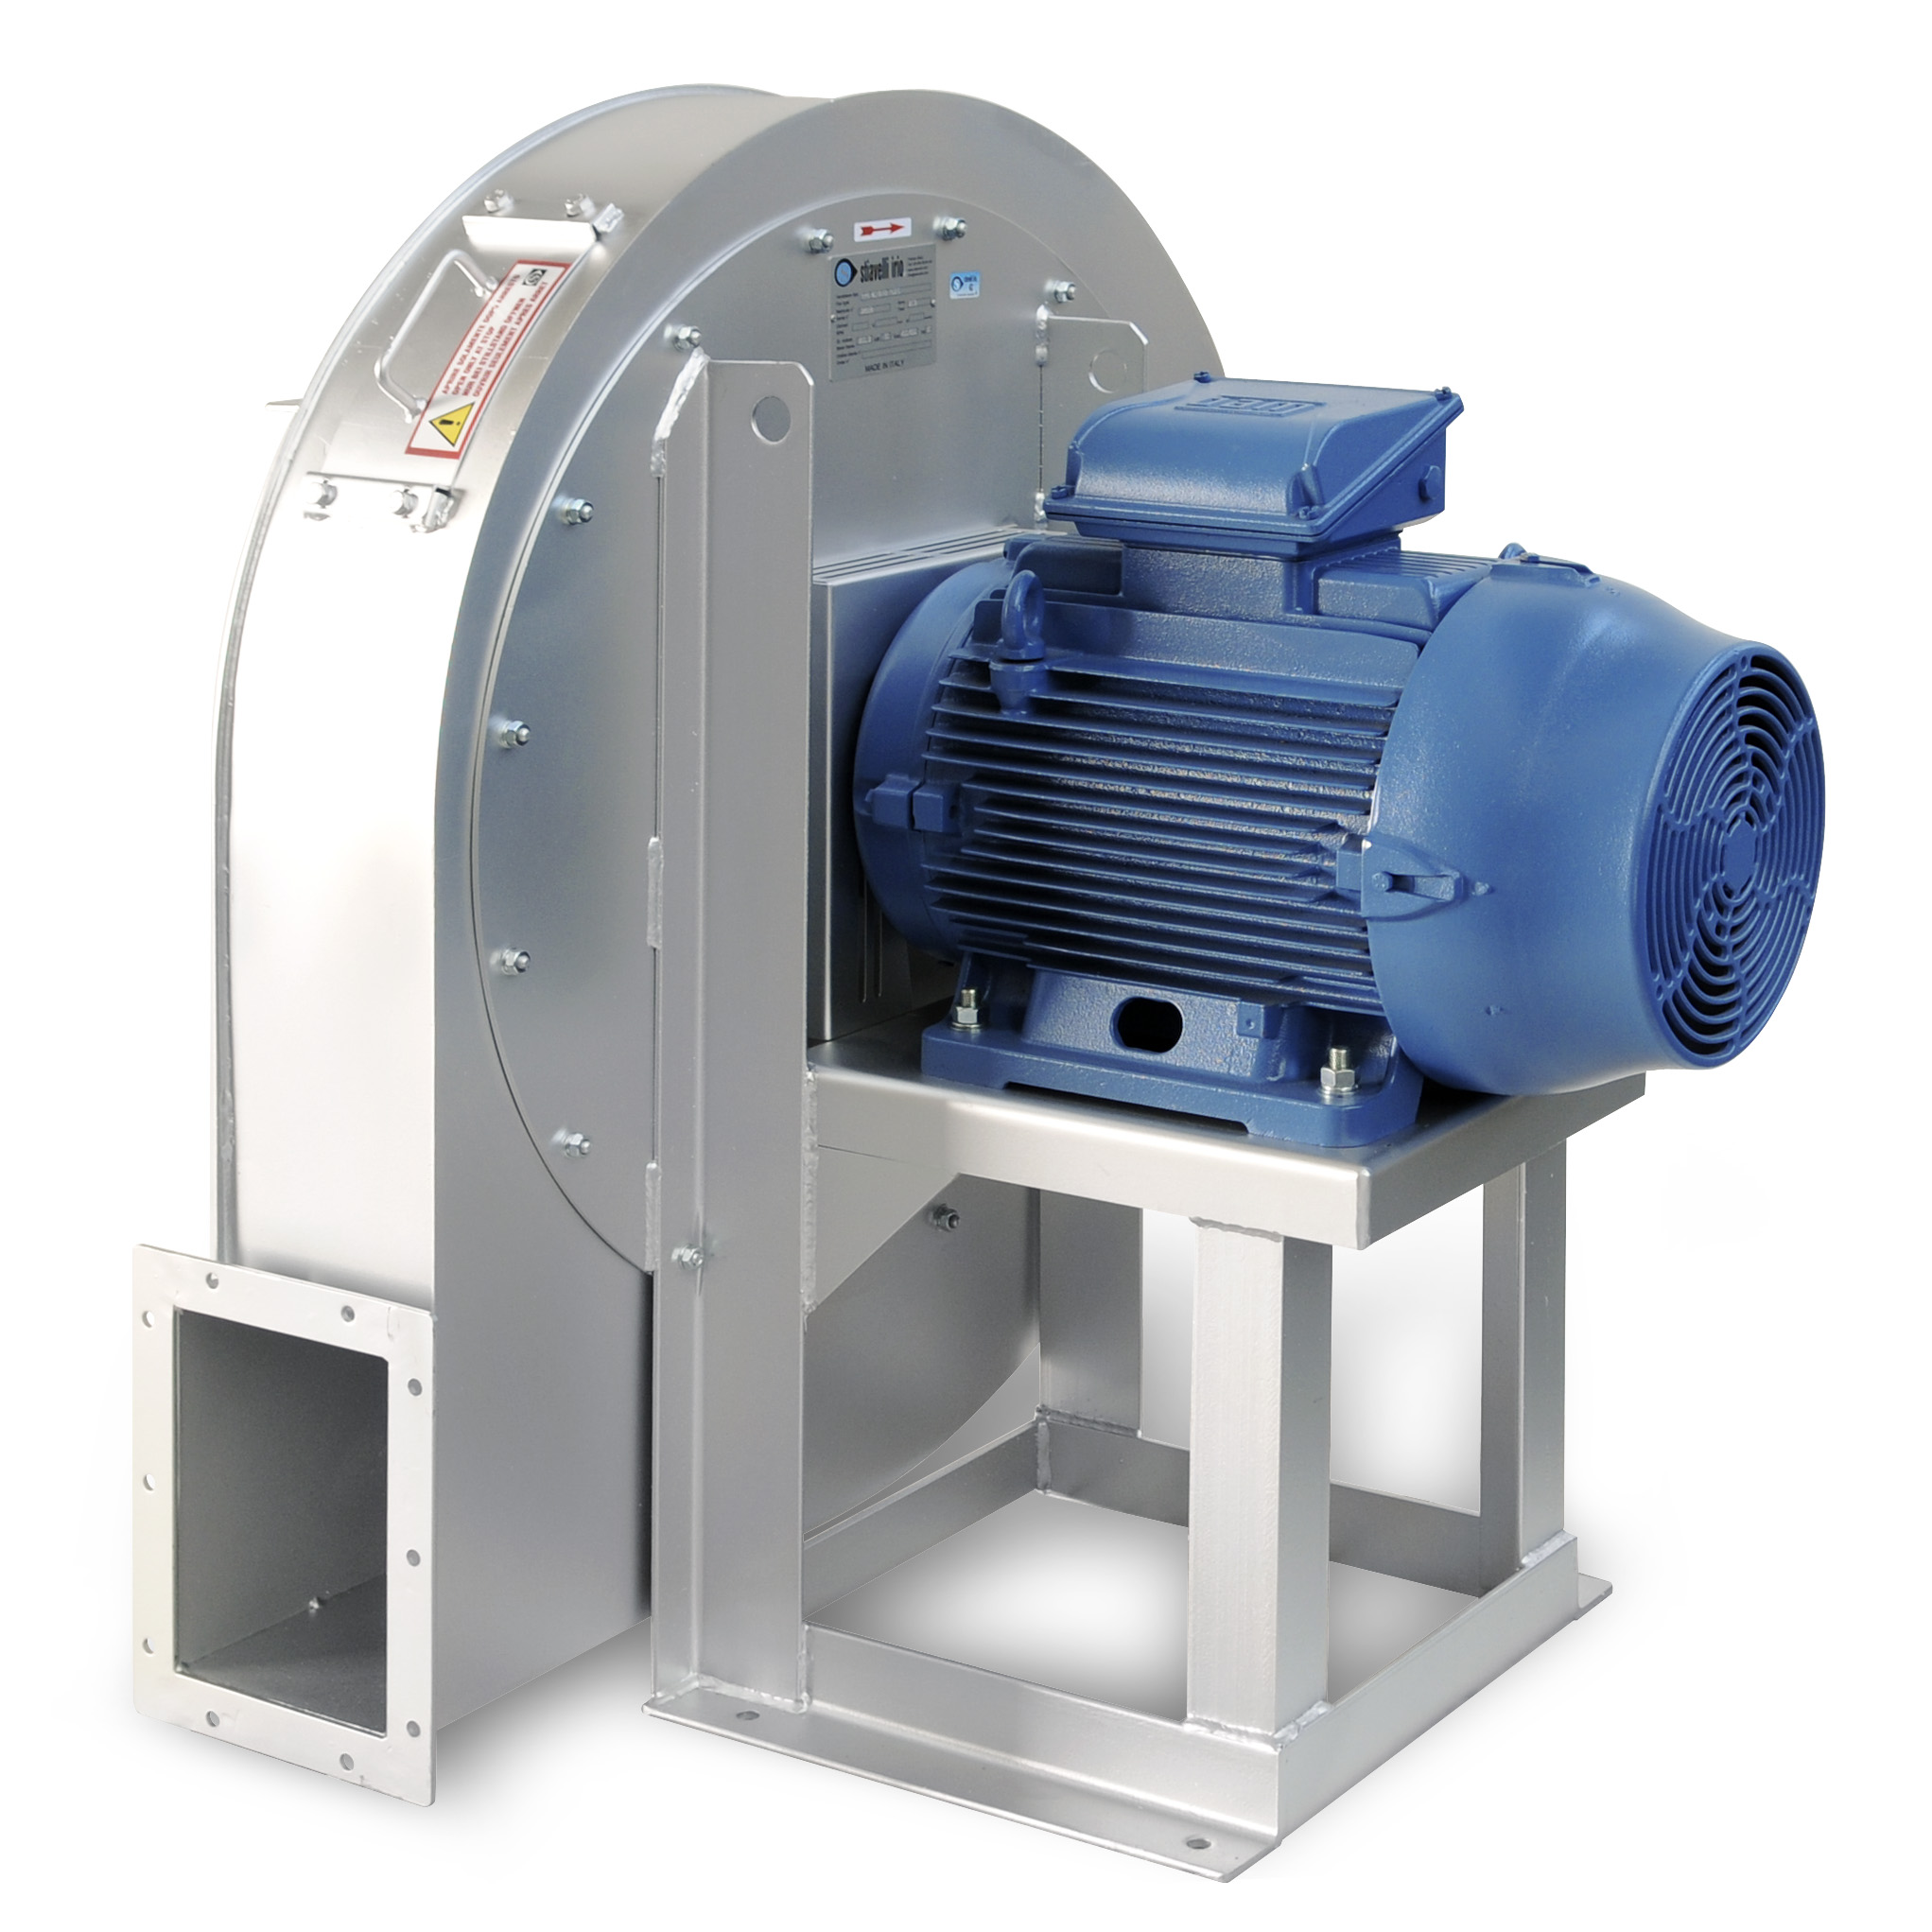 Stiavelli Irio srl | Industrial Fans and Blowers